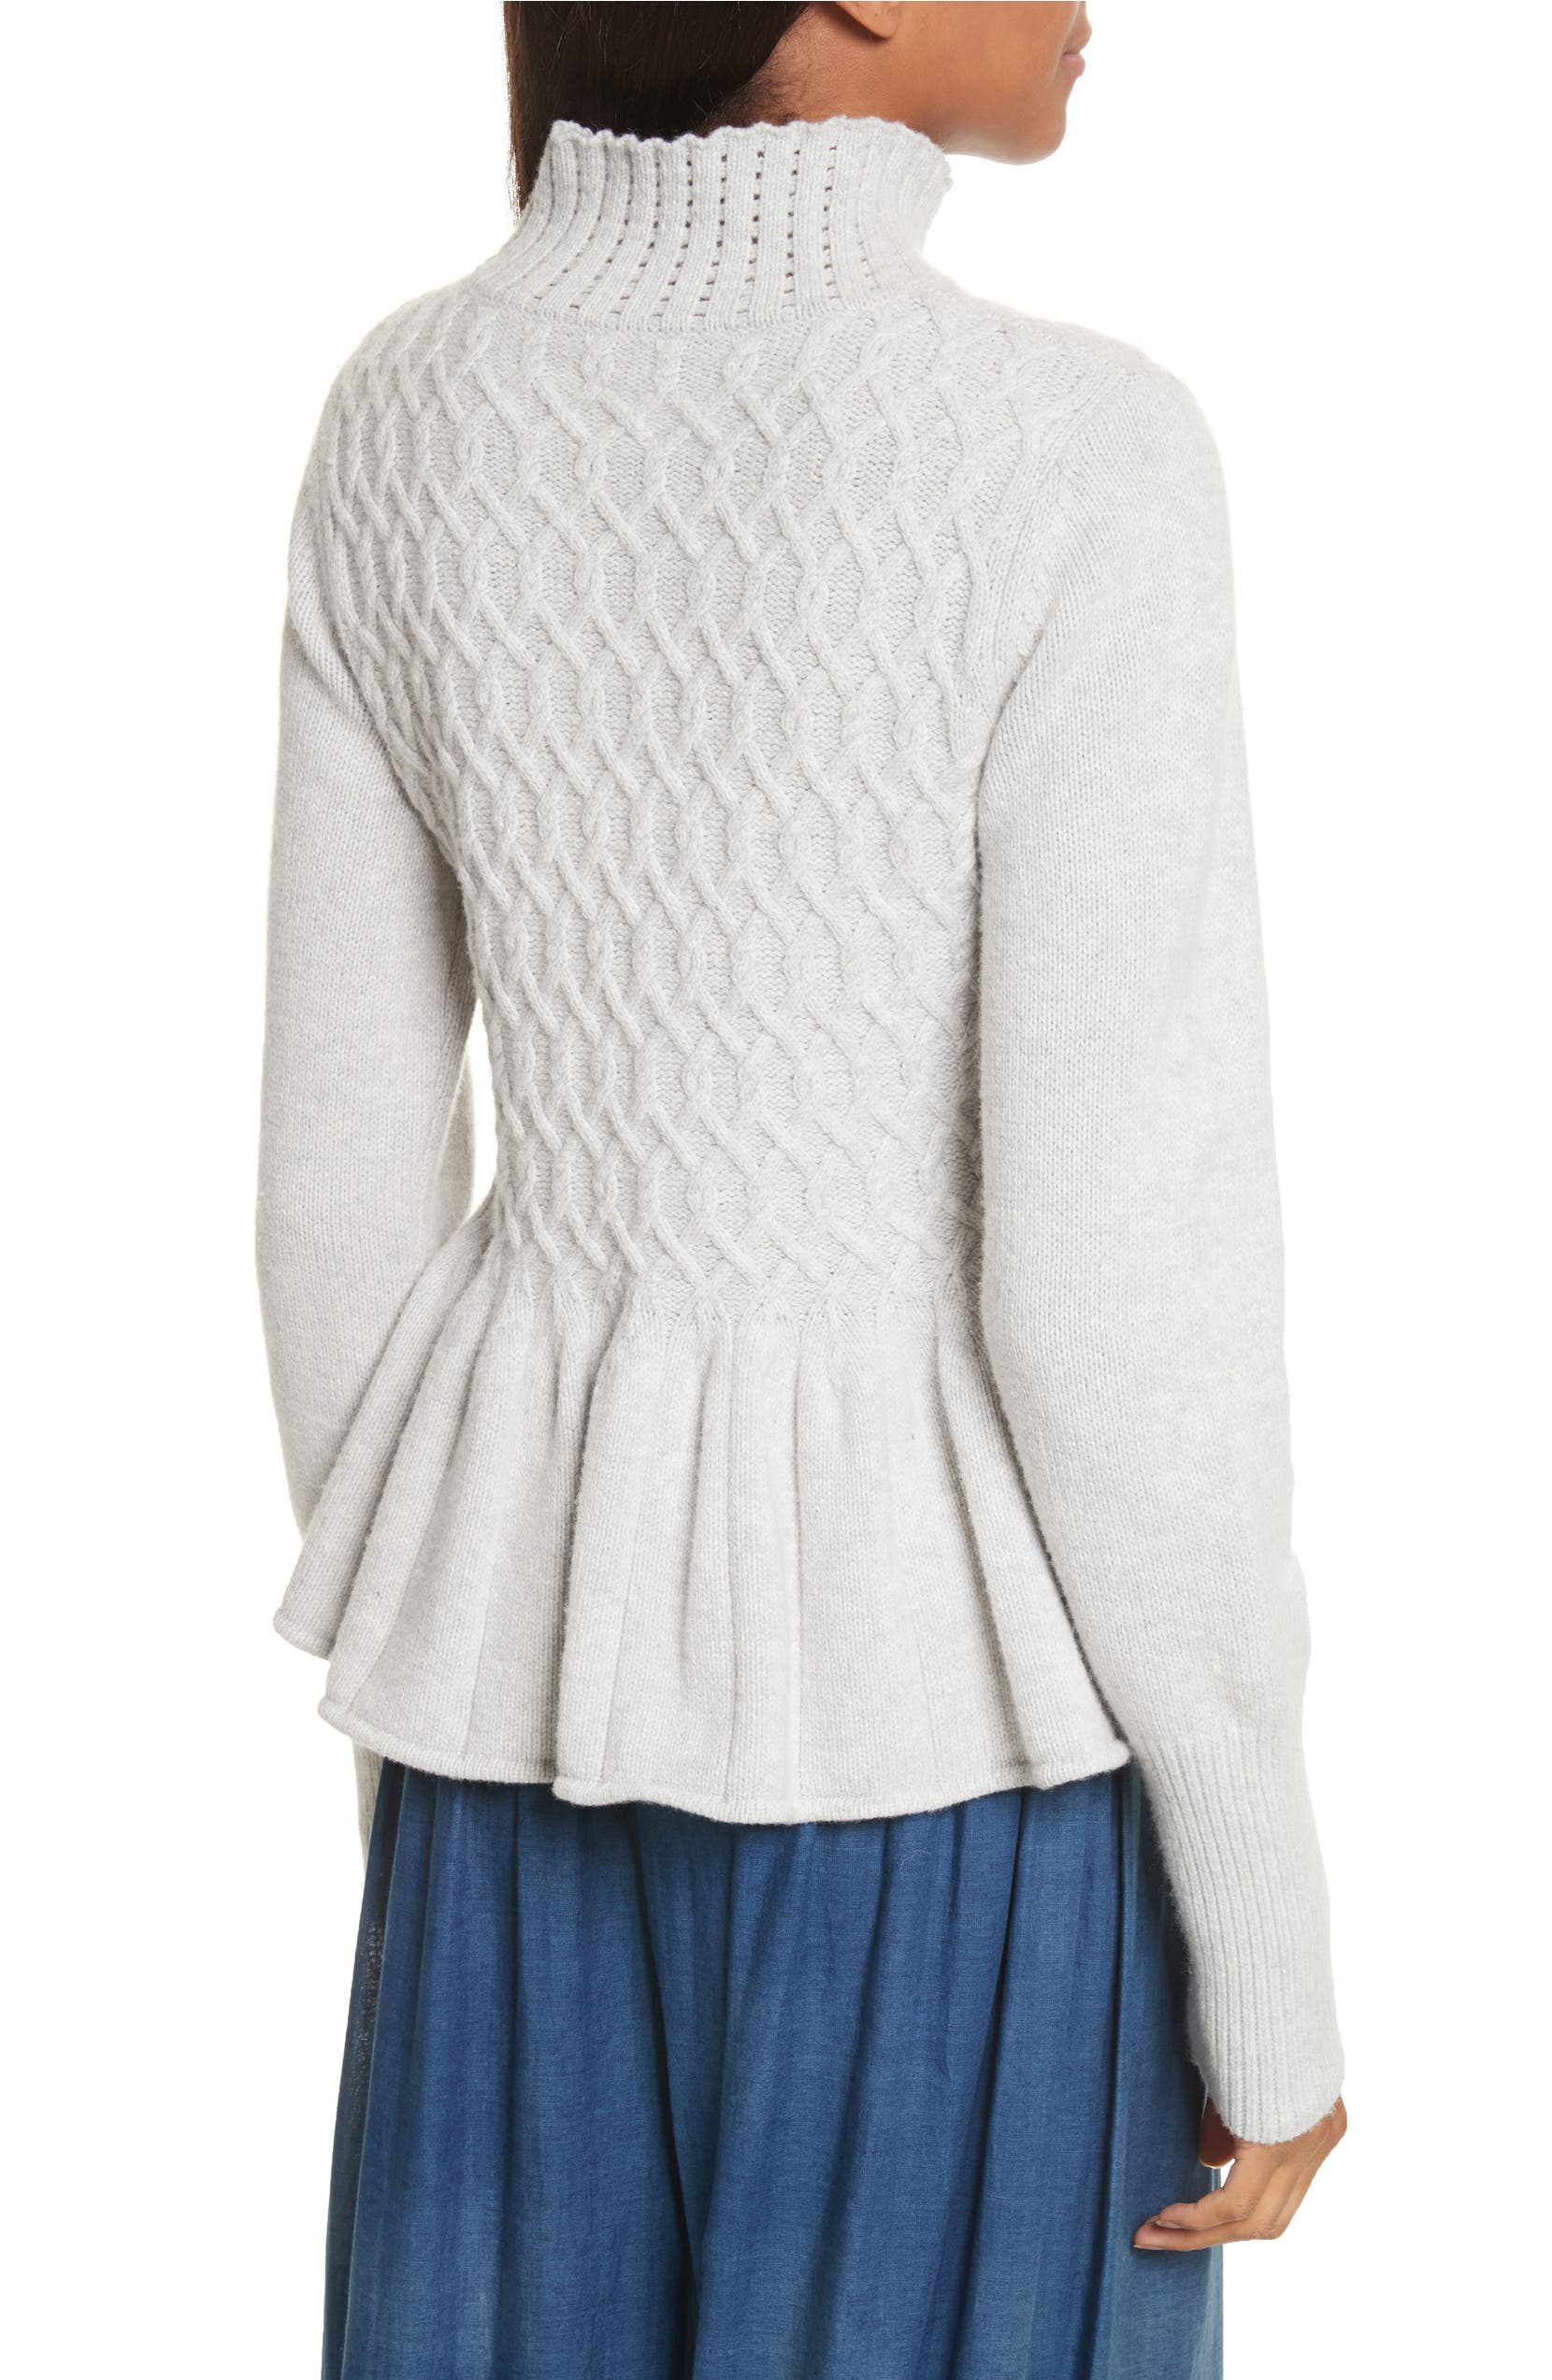 39fe1cd74 La Vie Rebecca Taylor Braided Cable Mock Neck Pullover